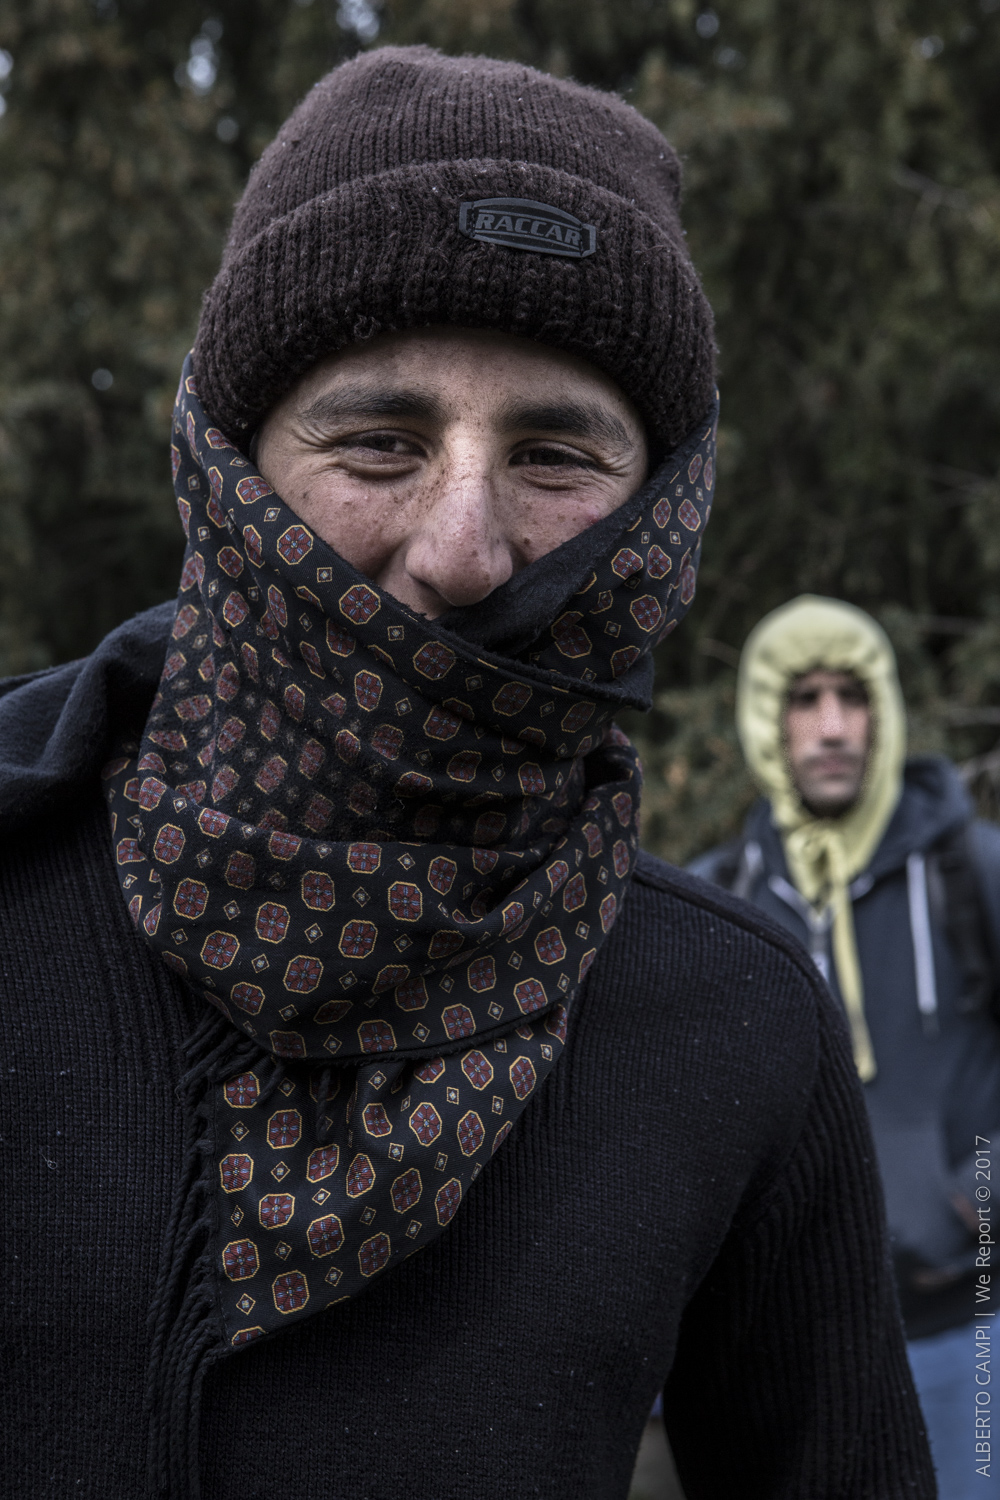 An Afghan refugee just arrived in the city of Subotica. Serbia, March 2015